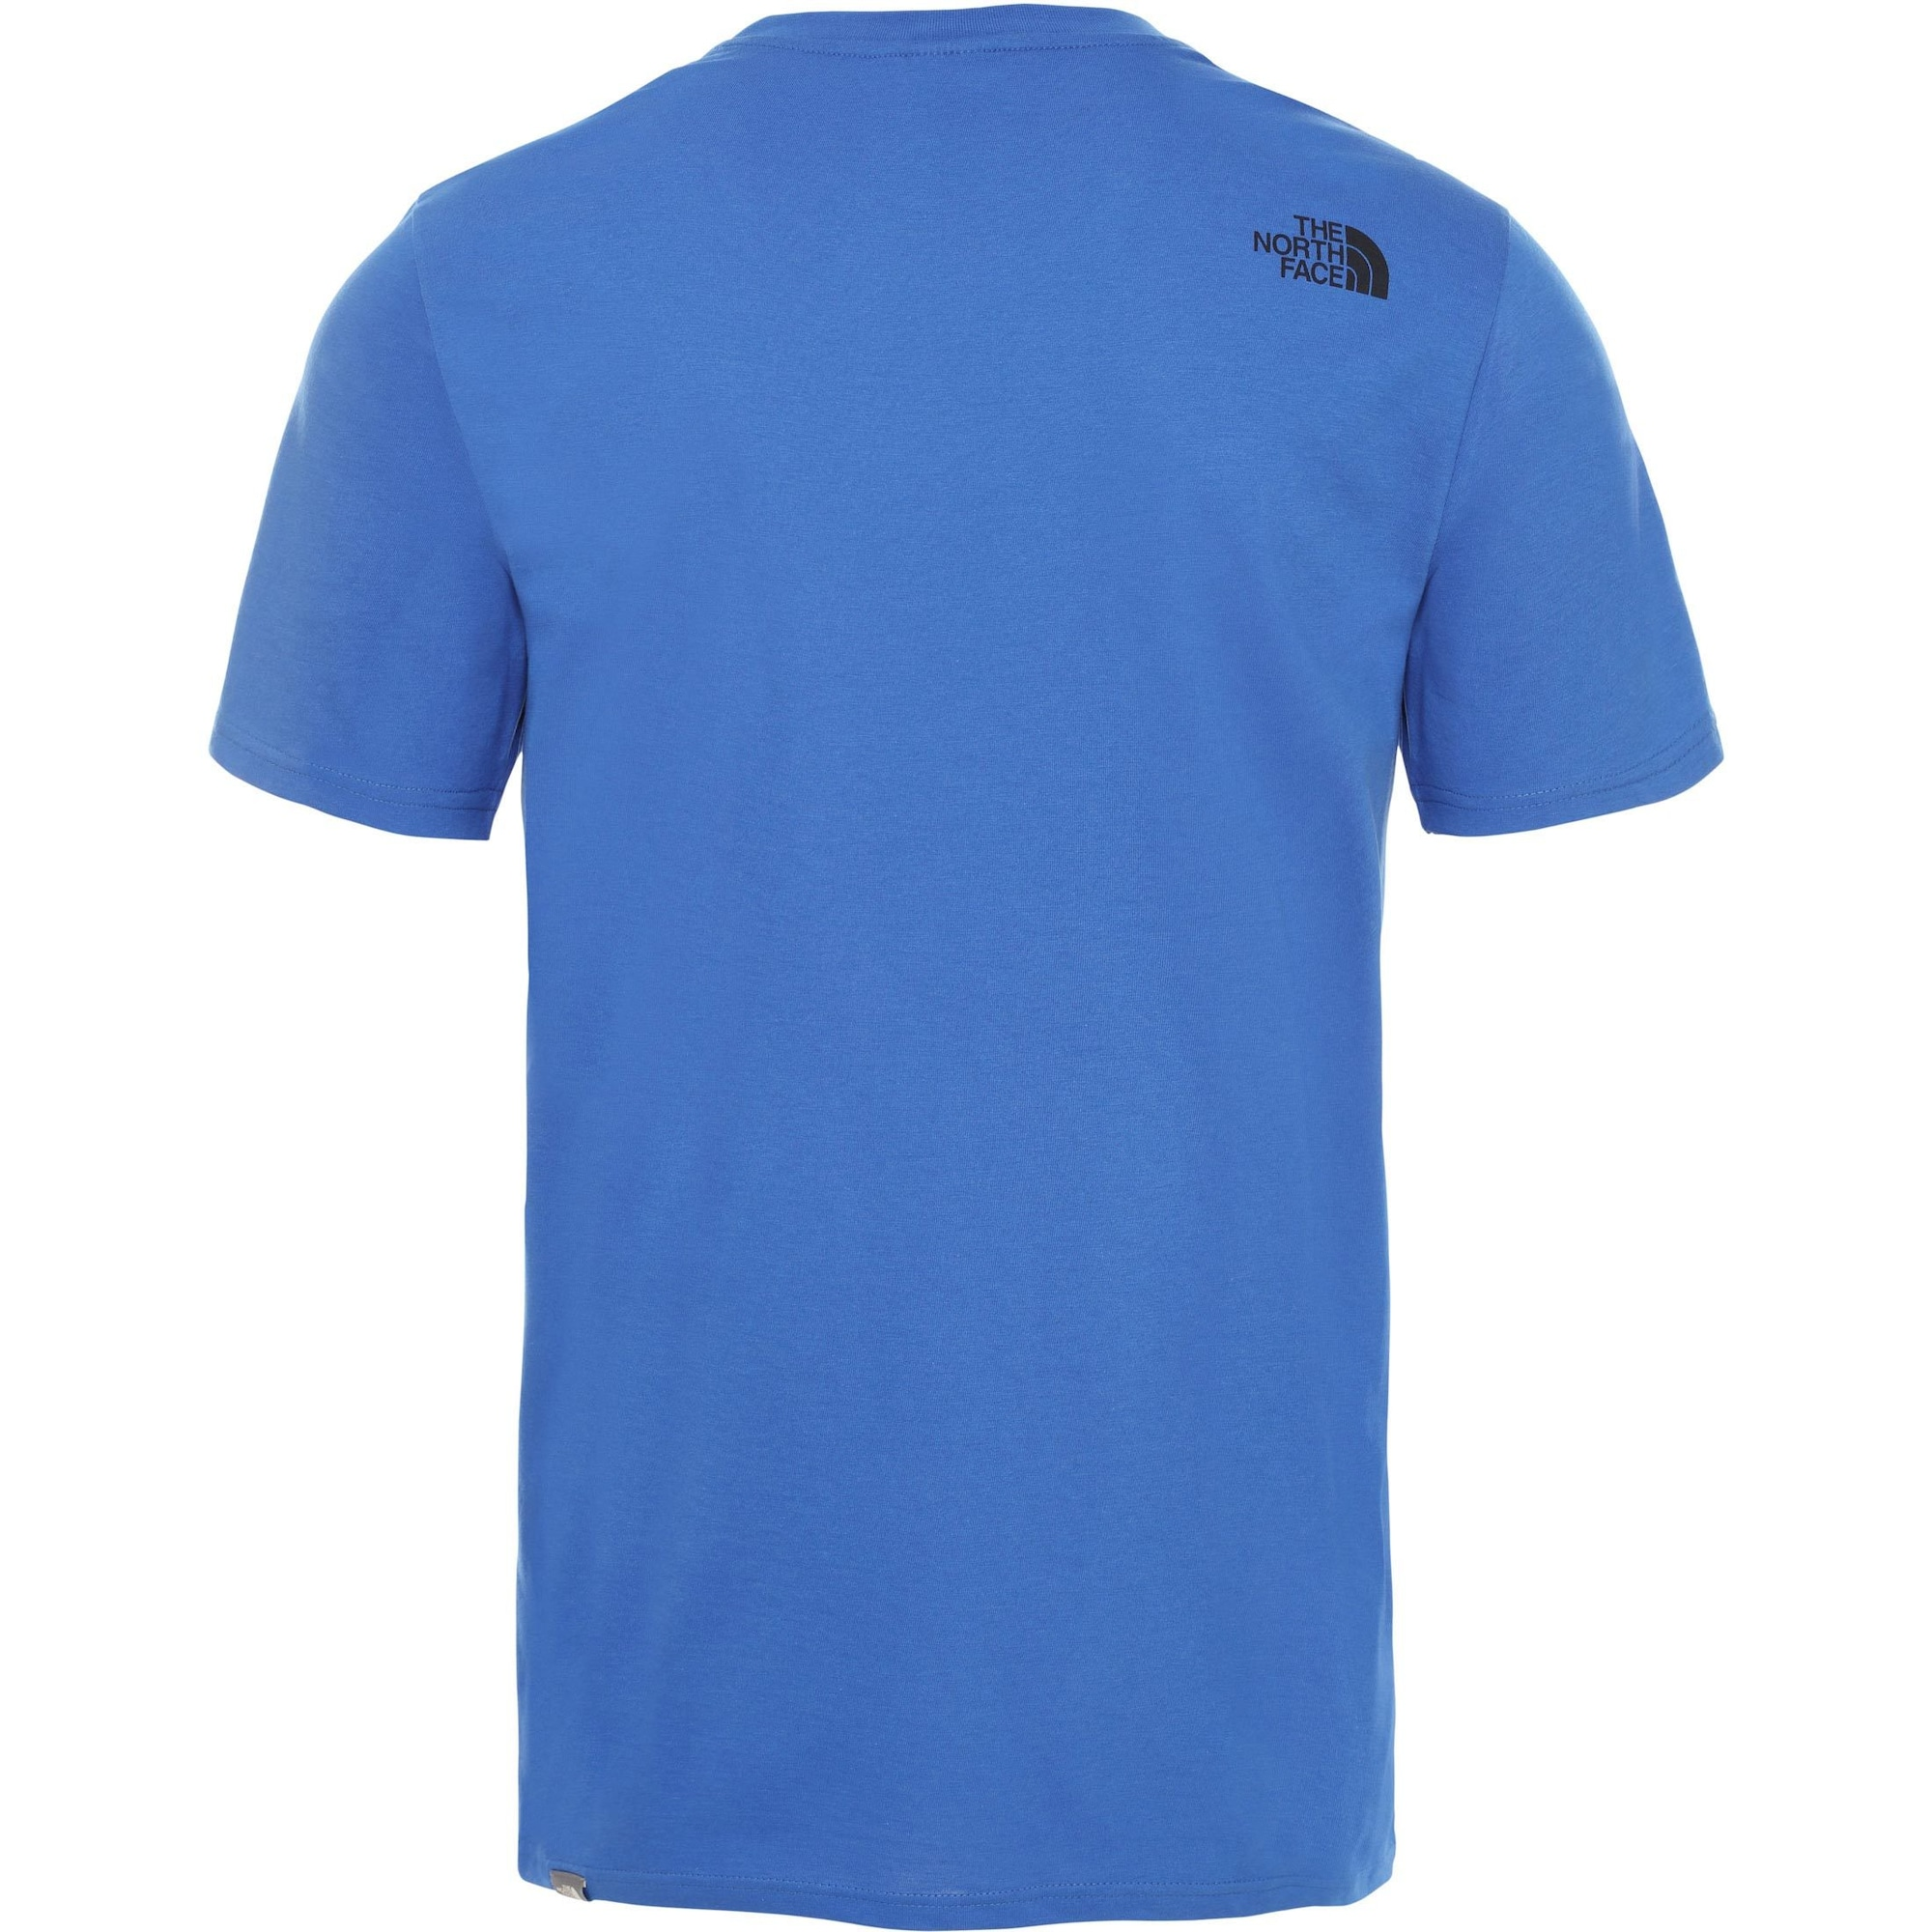 the north face - T-Shirt 'Simple Dome'